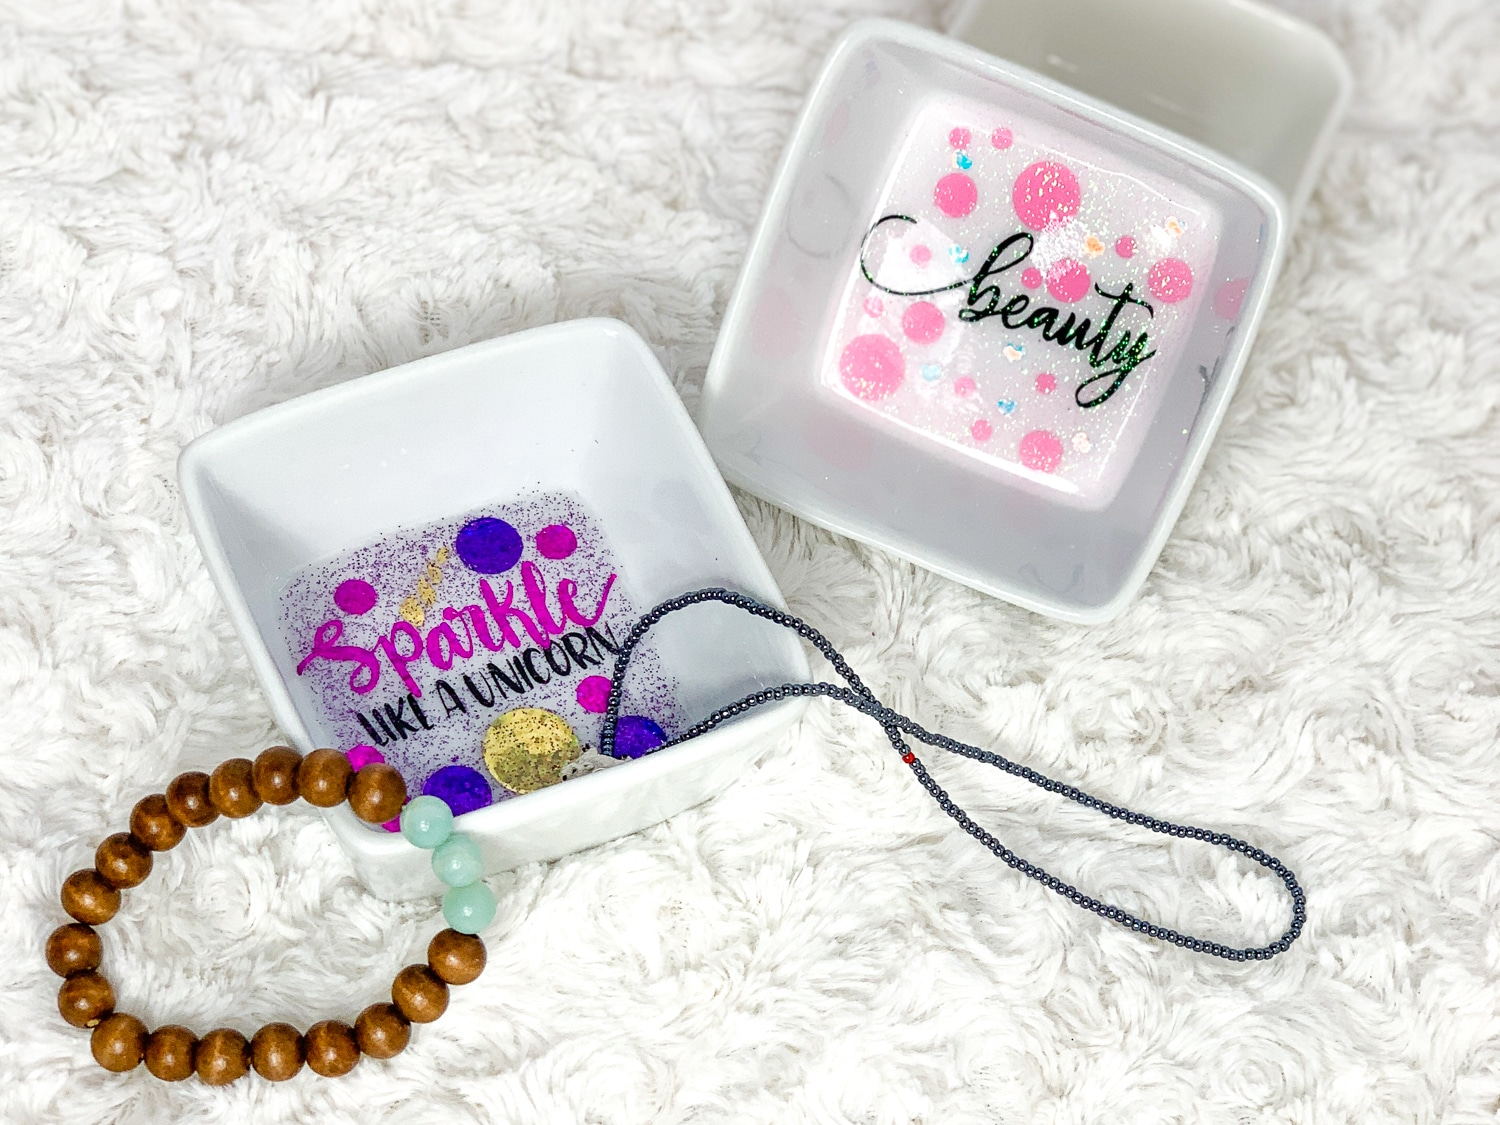 I have been looking around the house looking at things, like what can I make with this... Which is how this Vanity Tray set with ring dish came about. #cricut #cricutmade #cricutexplore #cricutprojects #cricutcrafts #vanity #ringdish